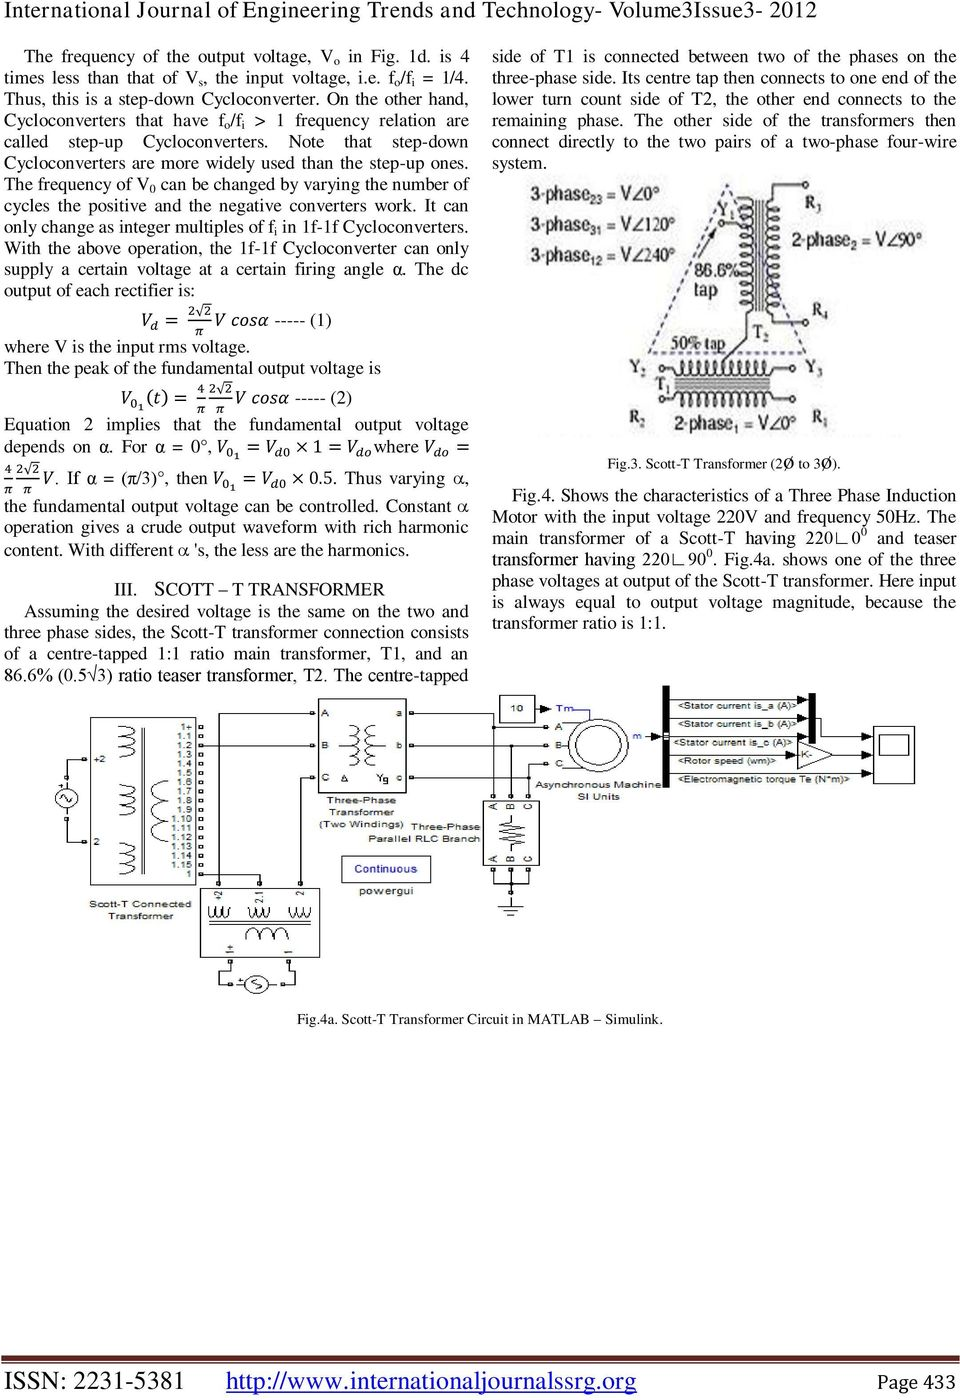 Control Of A Three Phase Induction Motor Using Single Supply Pdf Figure 2 Transformercircuit Diagram The Frequency V 0 Can Be Changed By Varying Number Cycles Positive